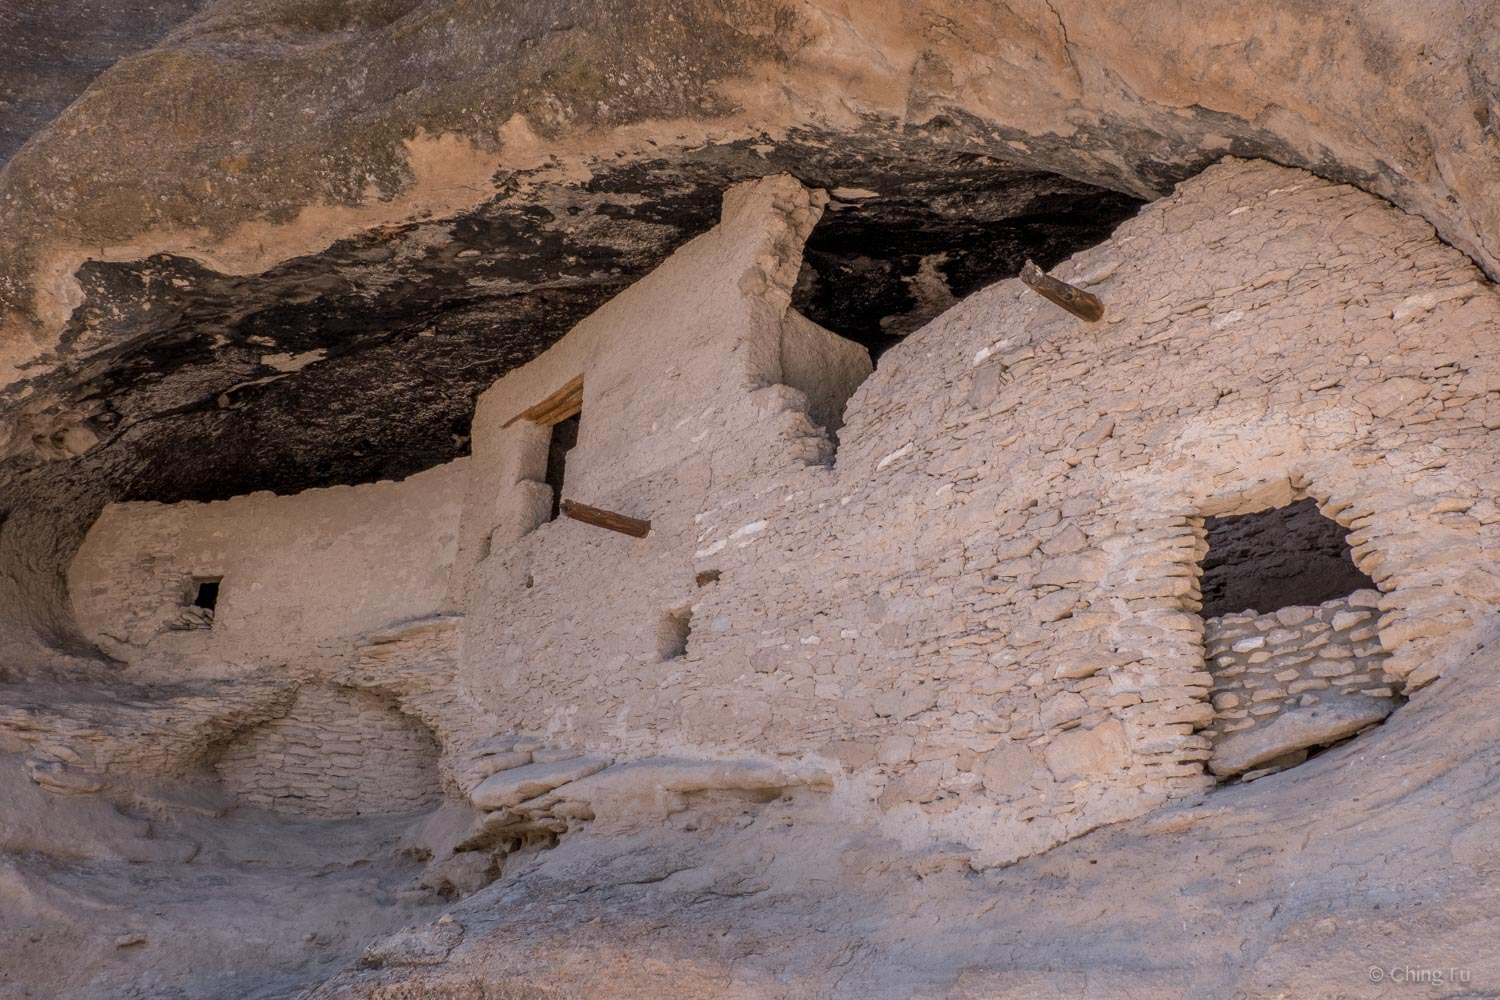 Close-up of one of the cliff dwellings.